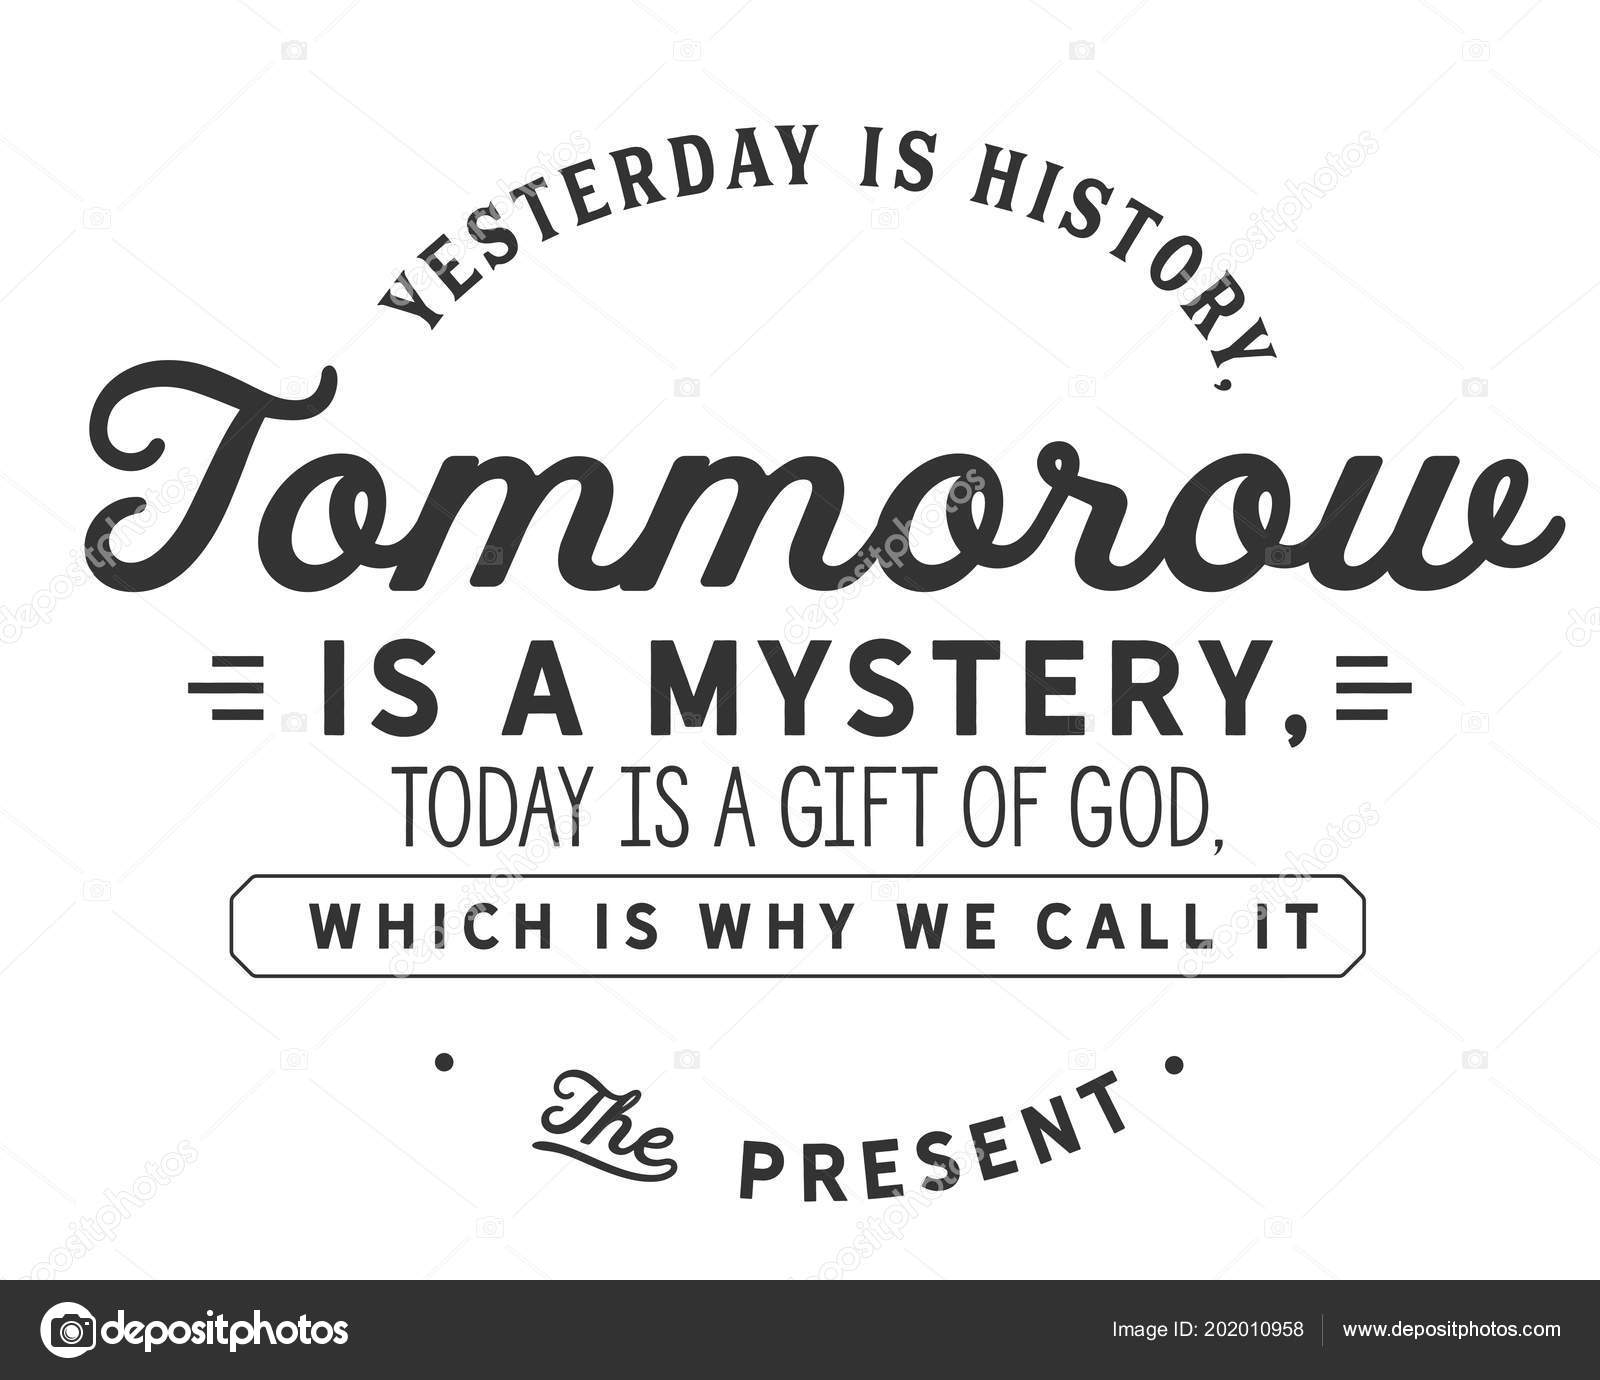 Yesterday History Tomorrow Mystery Today Gift God Which Why Call